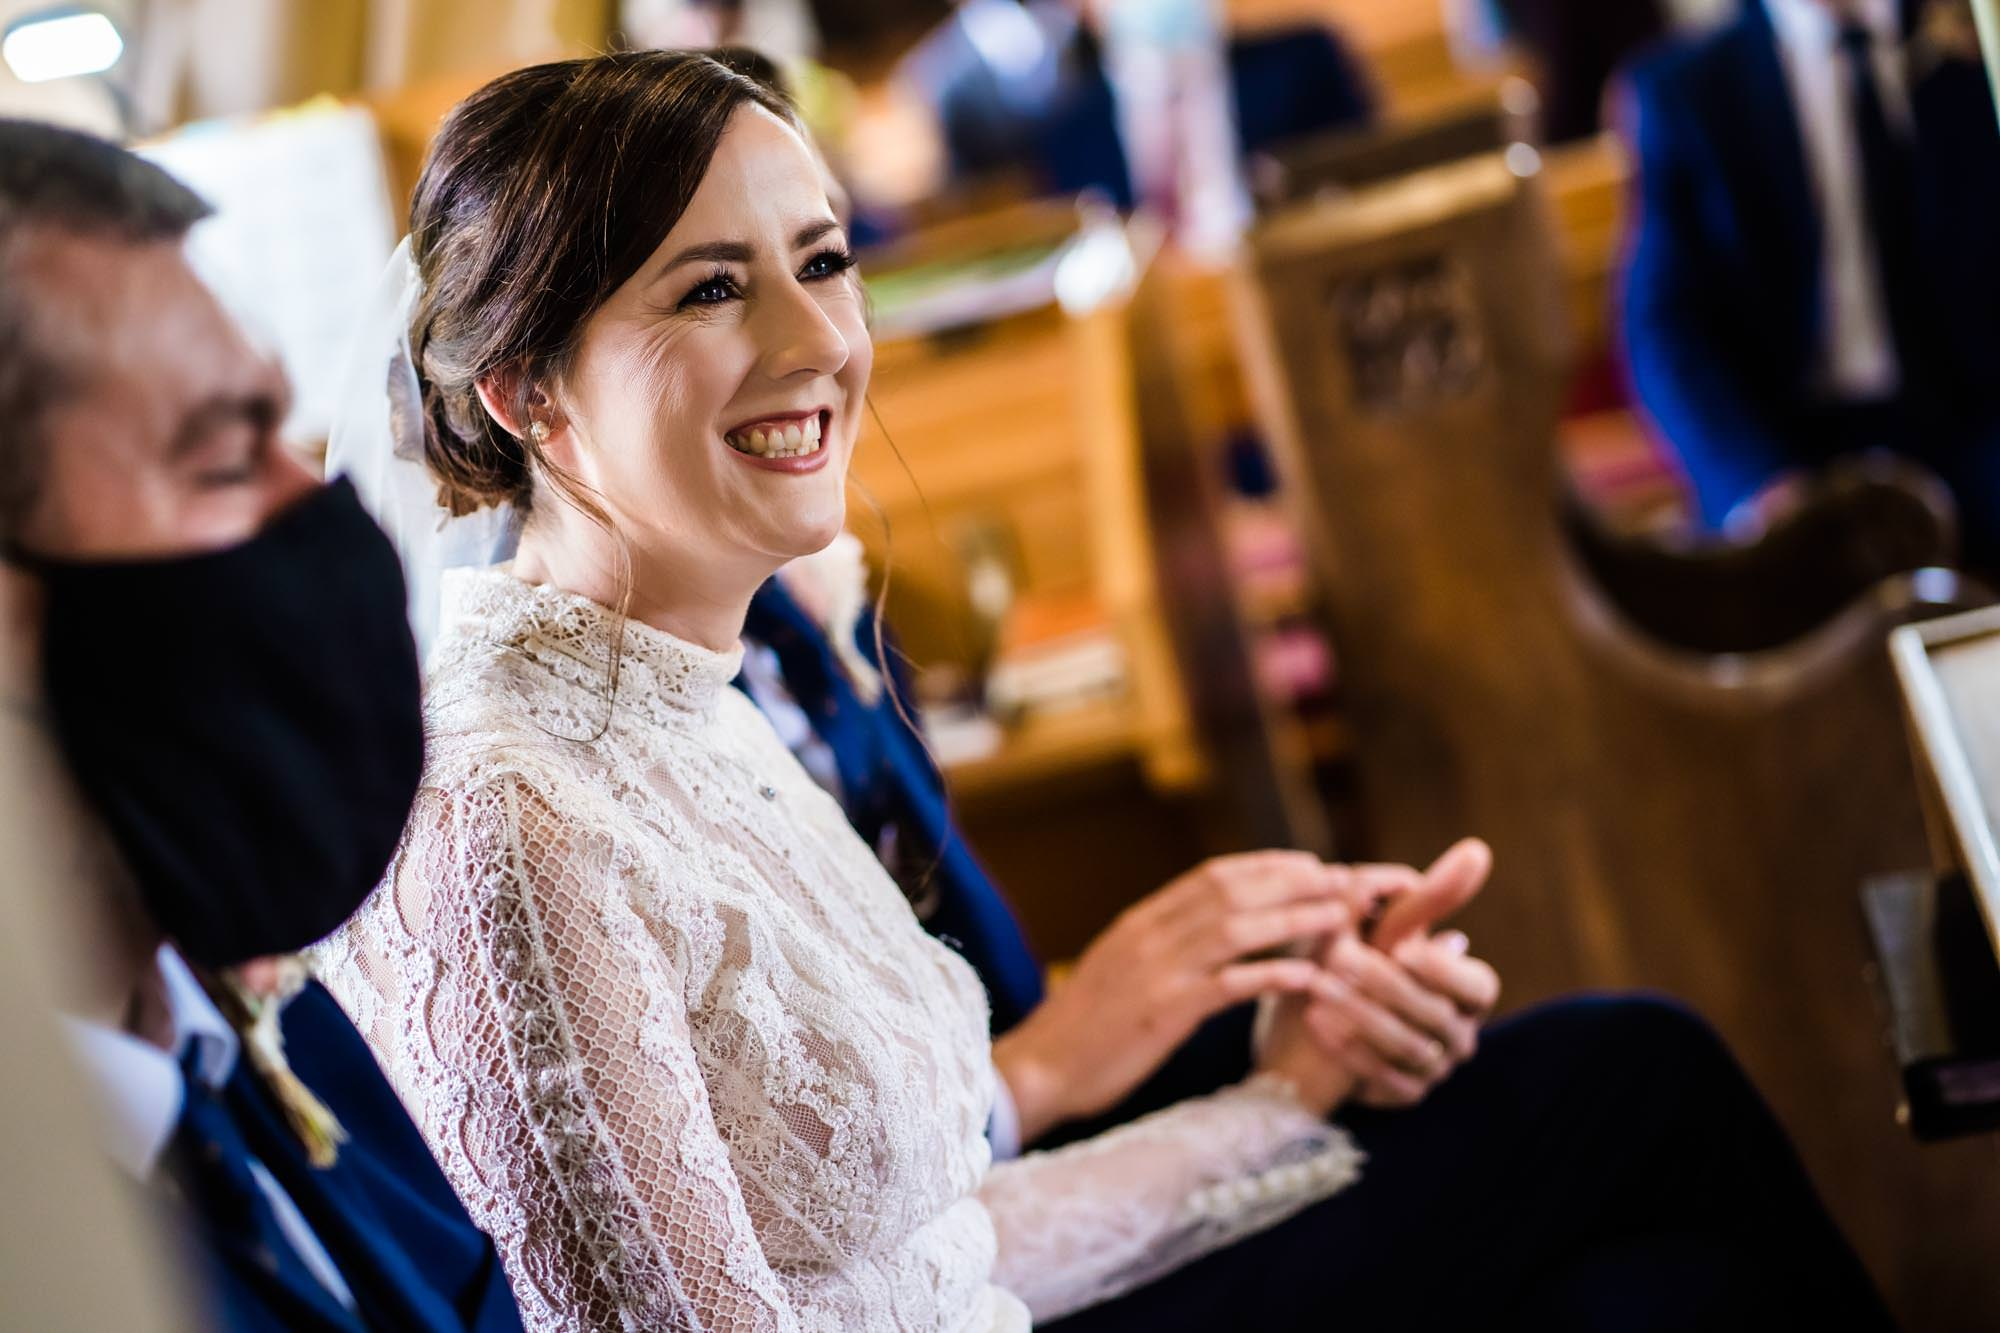 Bride smiling holding grooms hand